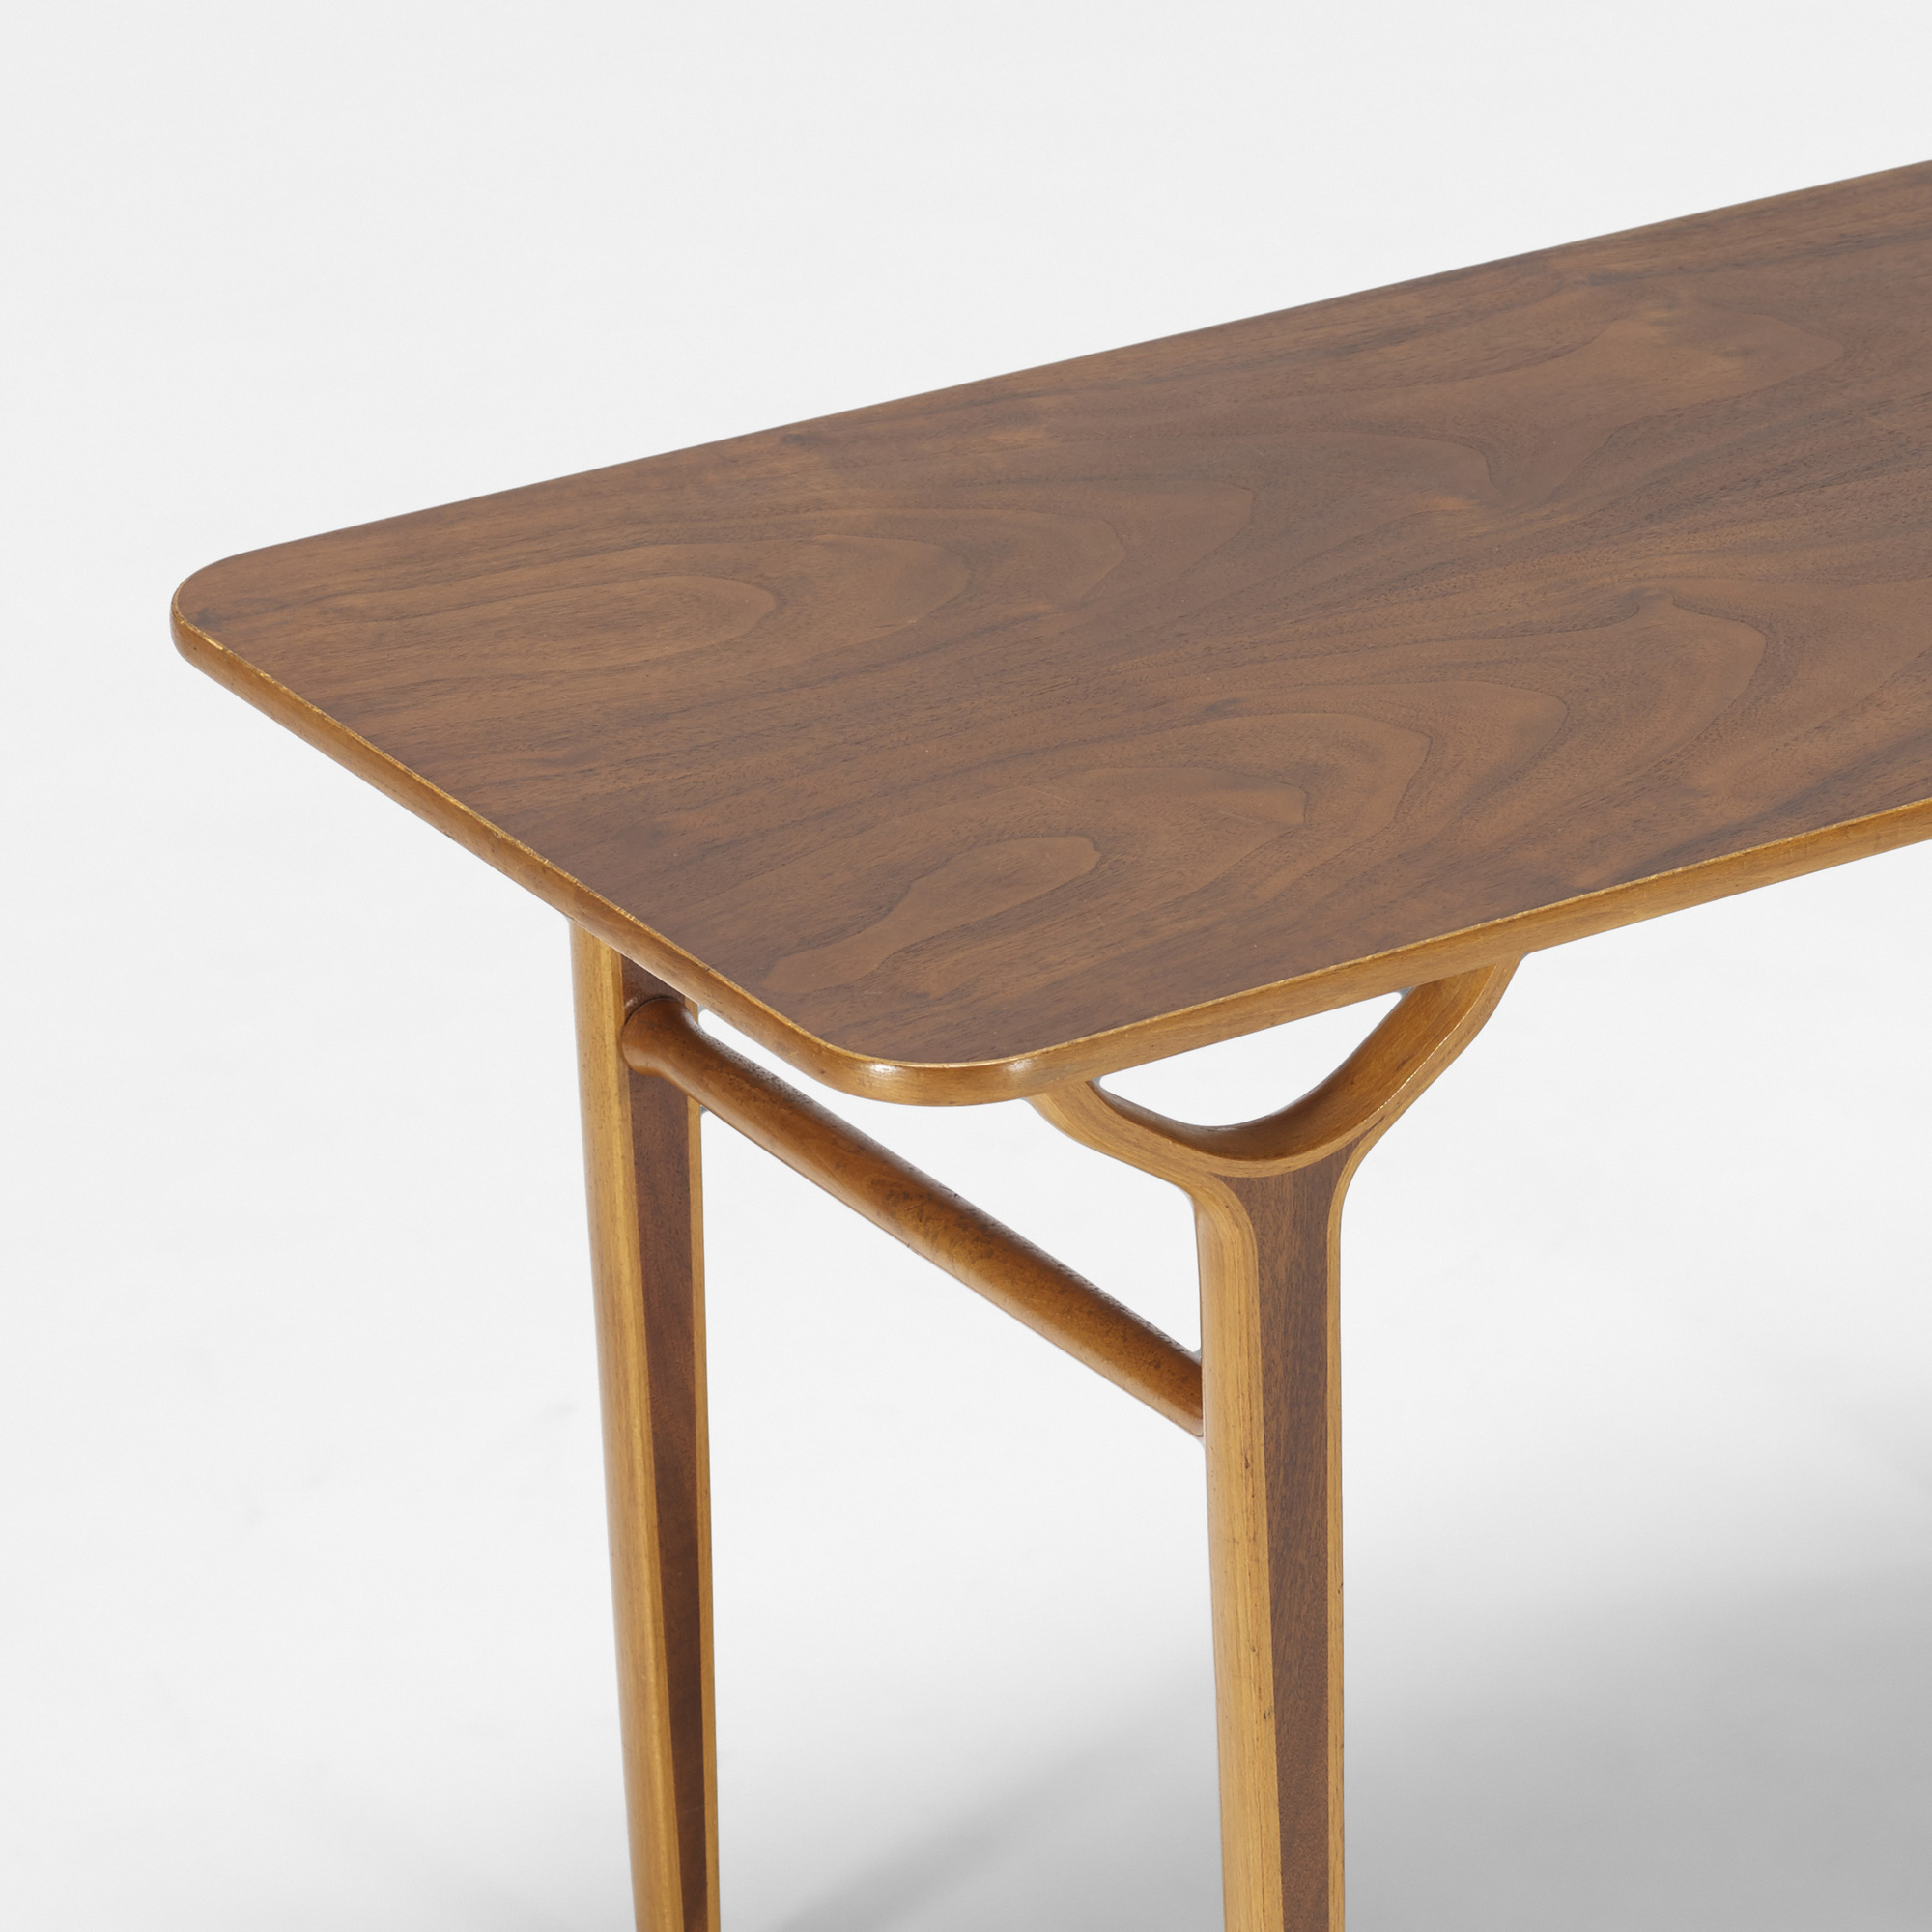 191: Peter Hvidt and Orla Mølgaard-Nielsen / Ax coffee table, model 6950 (4 of 4)